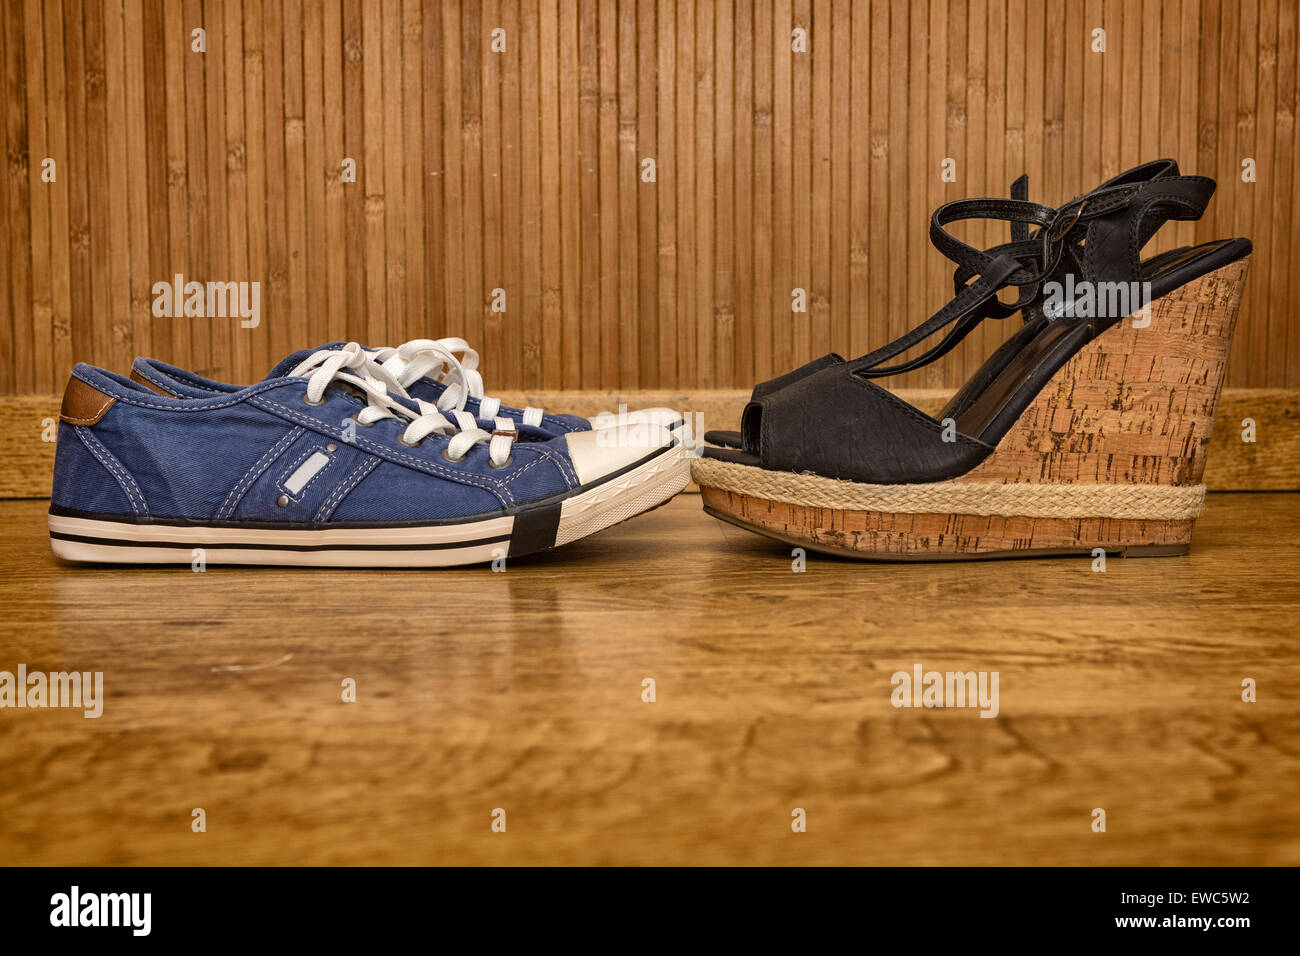 Choice of shoes - sneakers or sandals with high heels - Stock Image